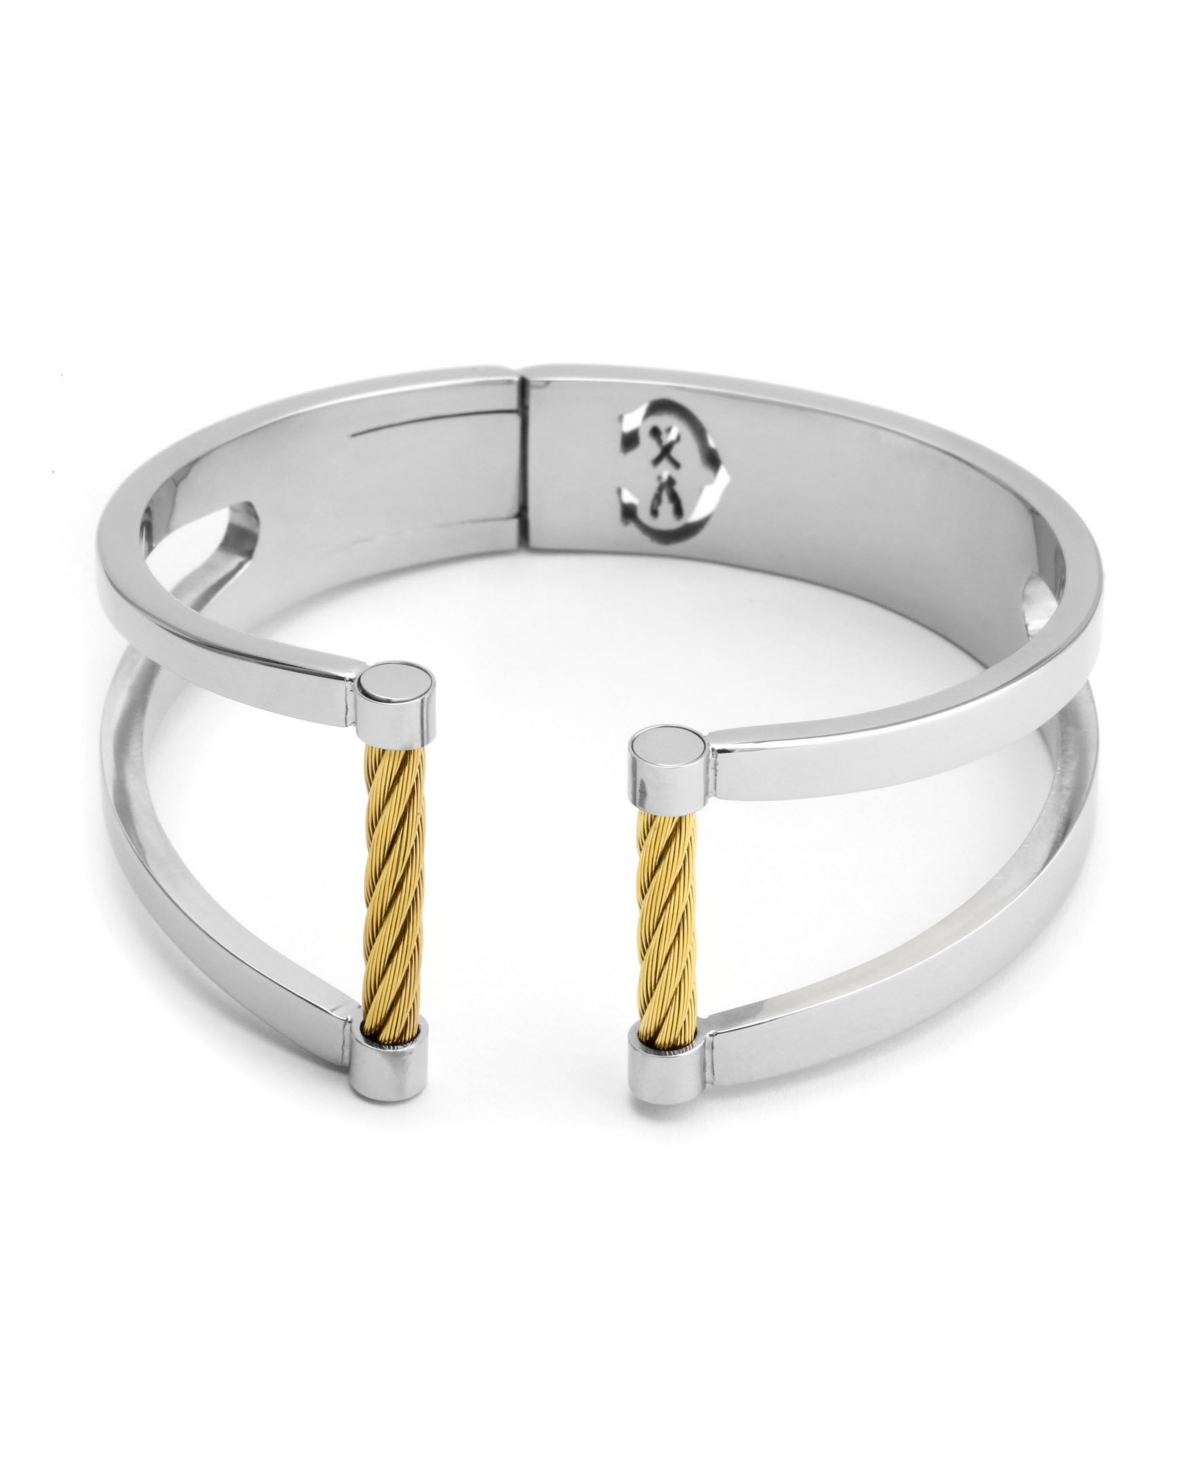 Cassis, Stainless steel bangle with Stainless steel yellow gold Pvd cable